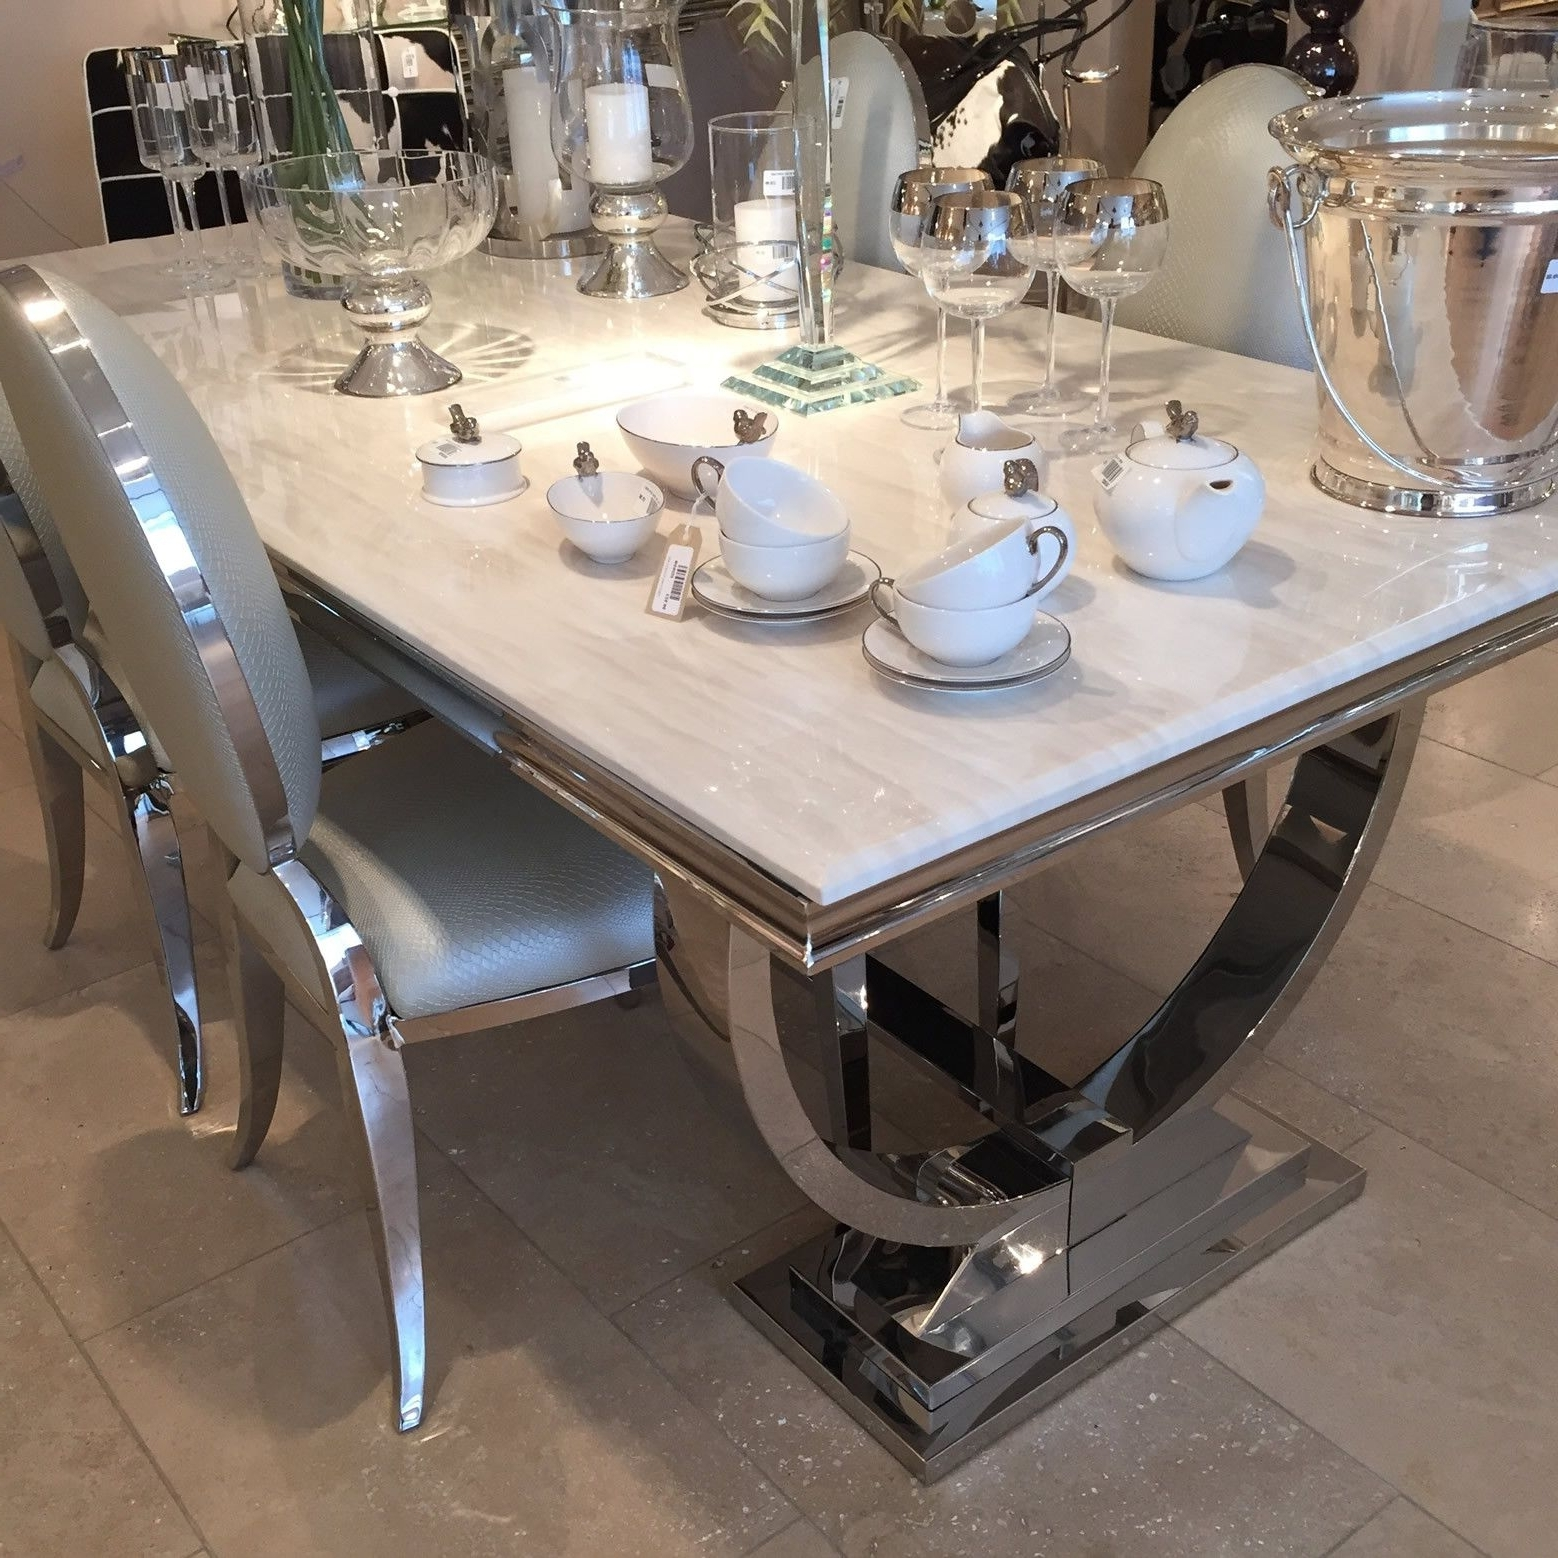 Chrome Dining Room Chairs Pertaining To Most Current Cream Marble And Chrome Dining Table With U Shaped Legs (Gallery 4 of 25)